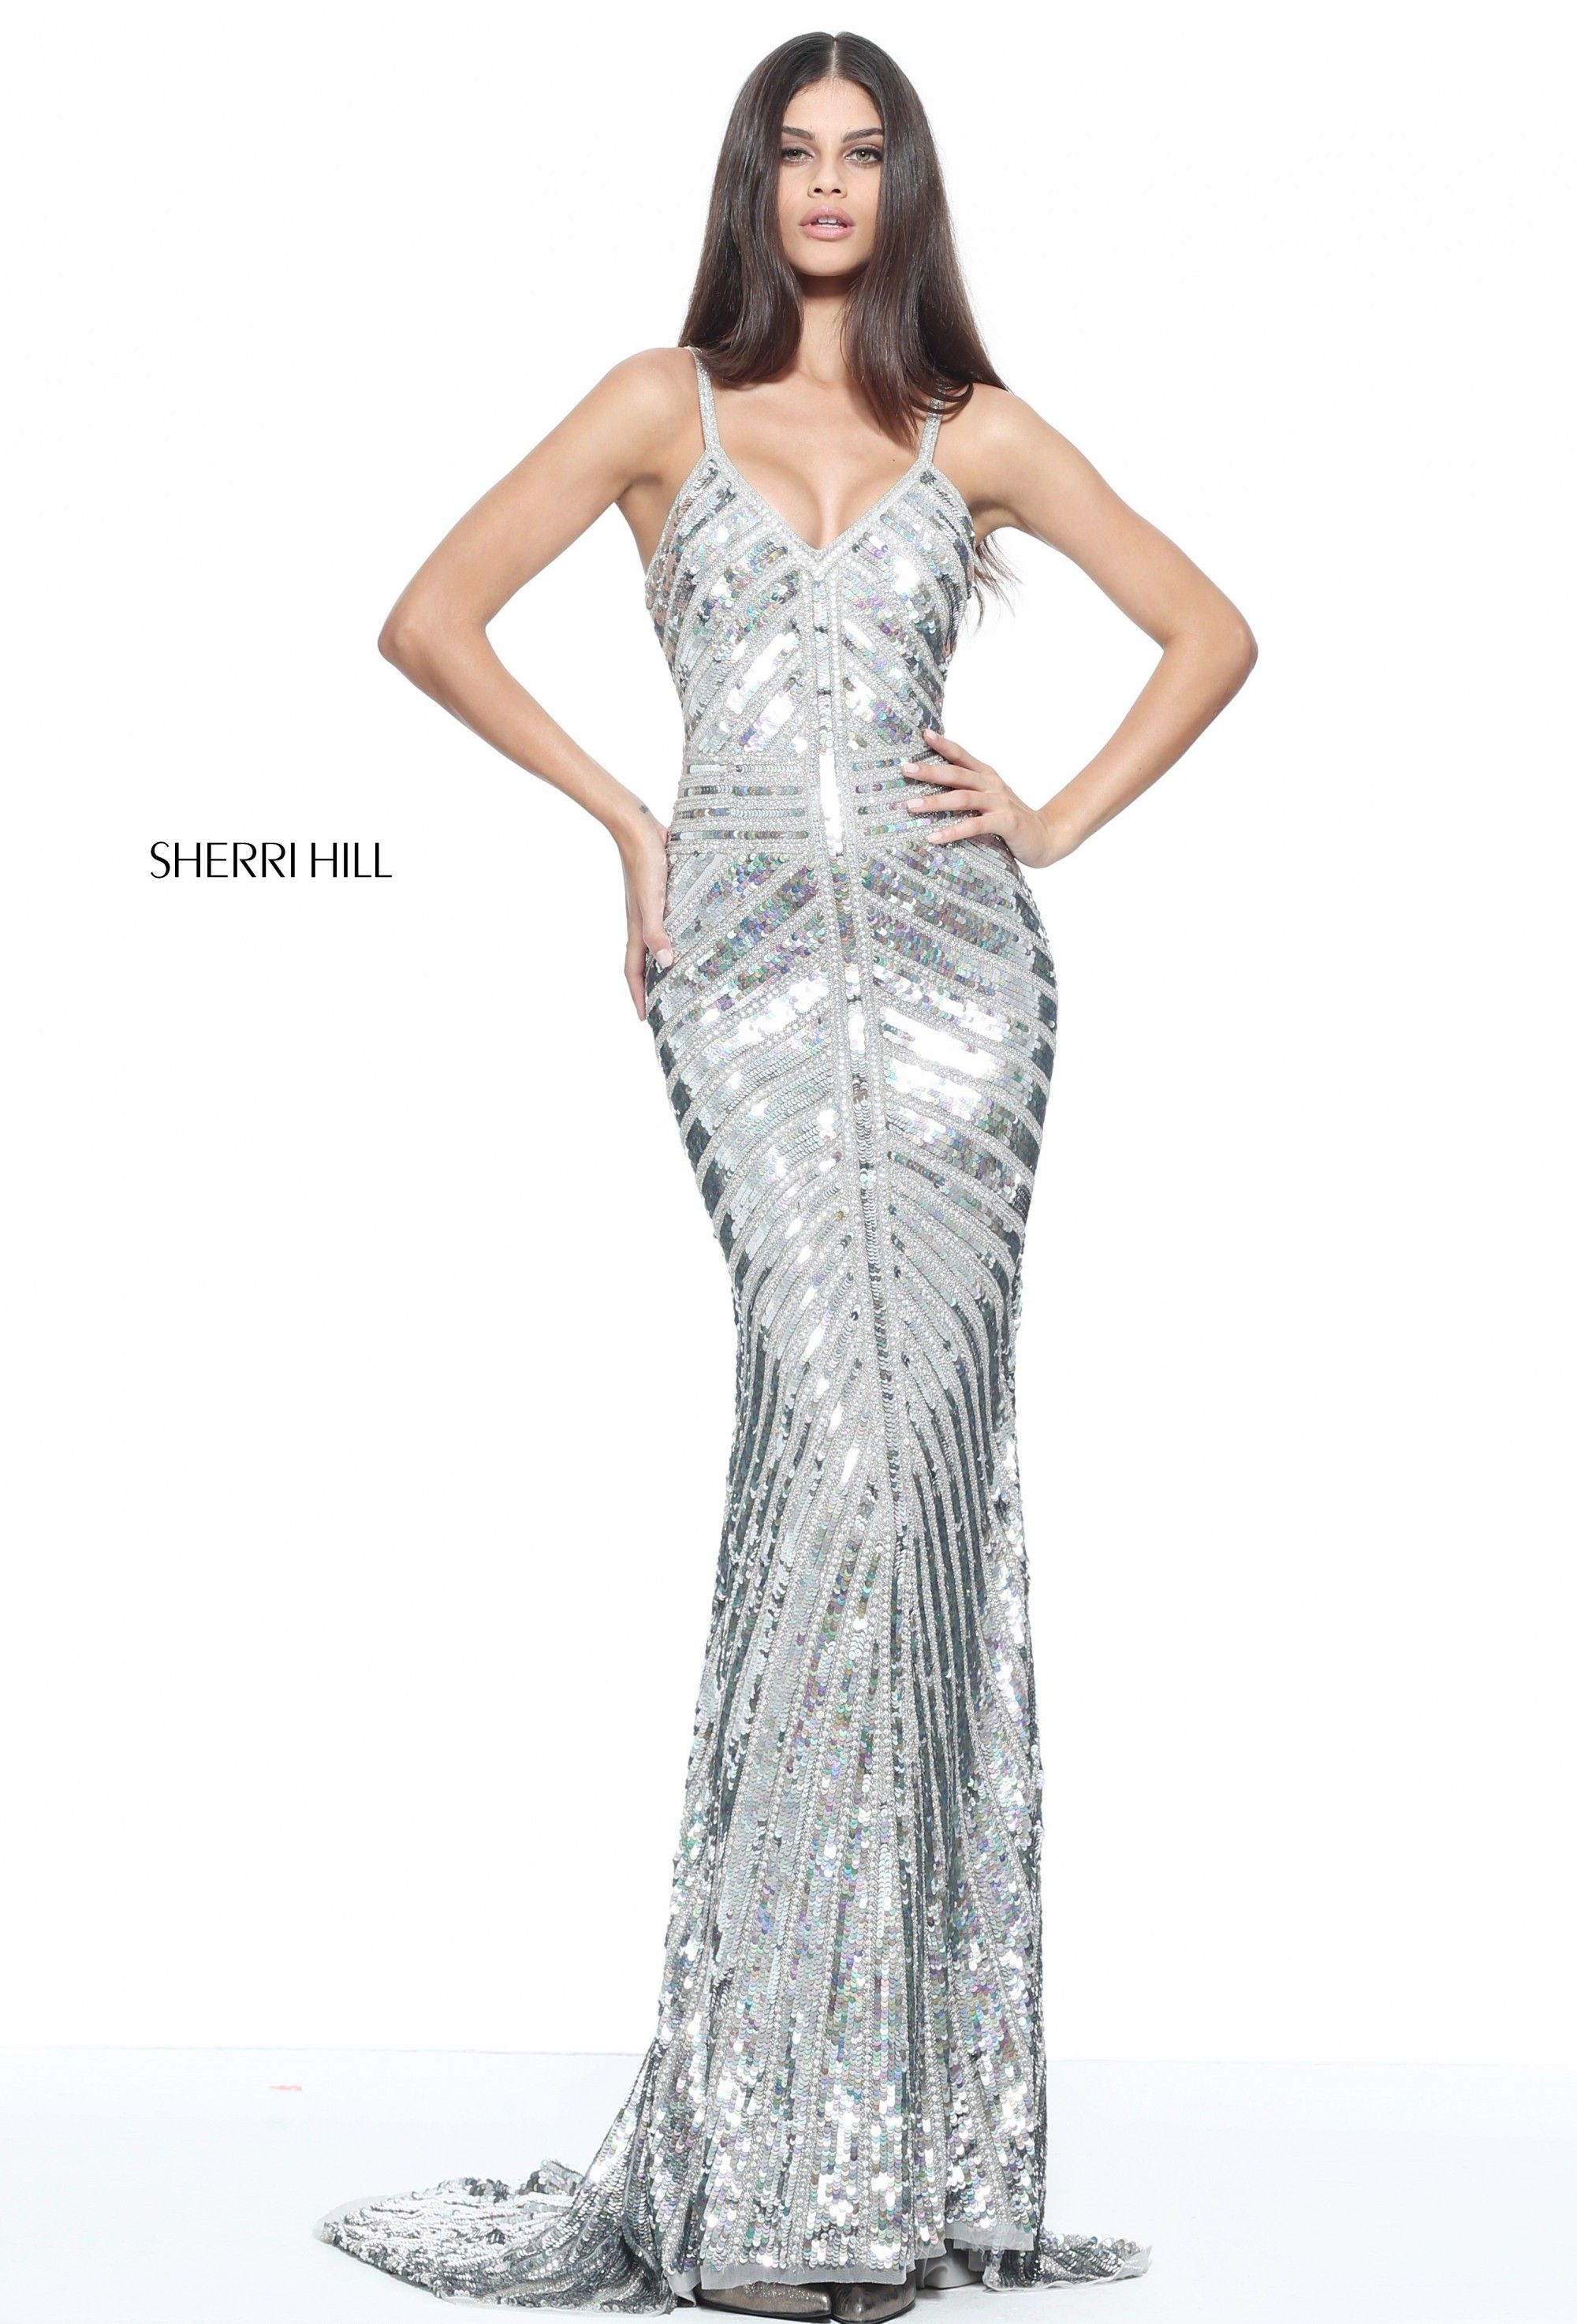 0e2e8644b1 Silver beaded trim adorns this Sherri Hill 51206 sleeveless silver print prom  dress with a deep V-neckline